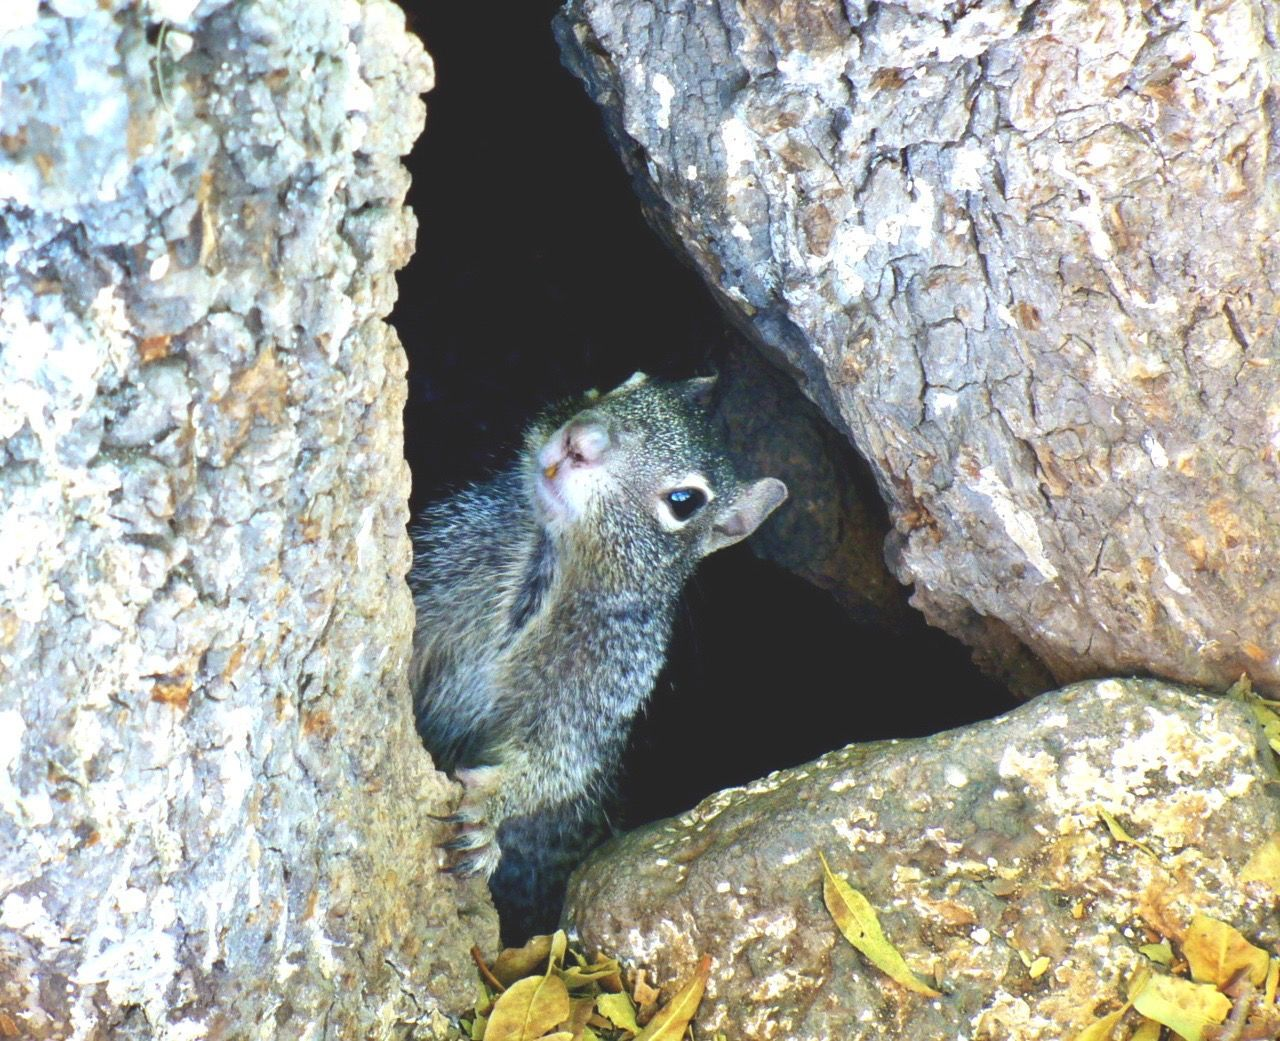 Close-Up Portrait Of Squirrel Amidst Rocks